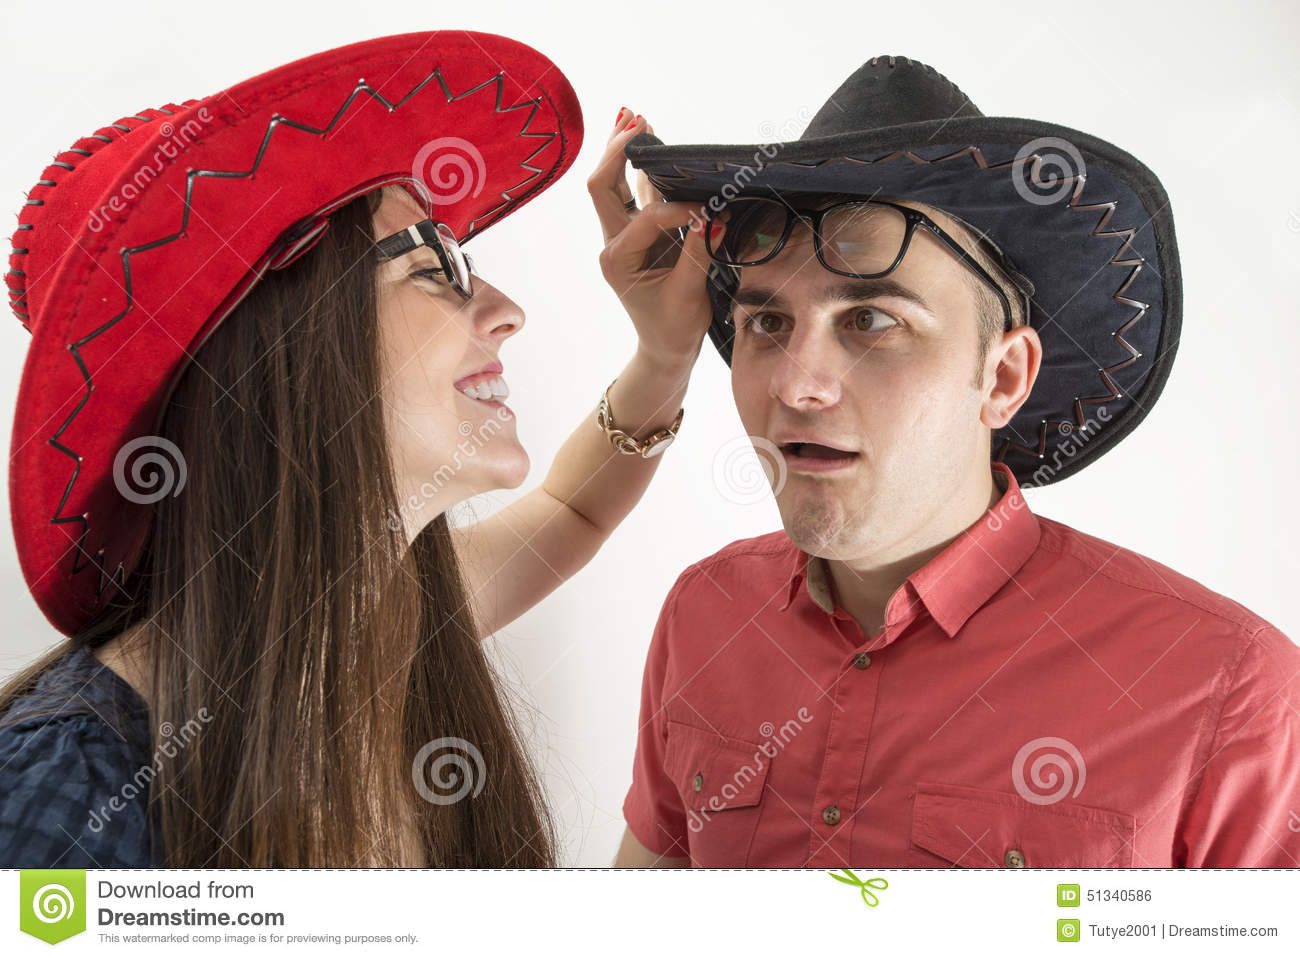 Young couple with cowboy hats and glasses making silly faces on white 863b9e7a9f5